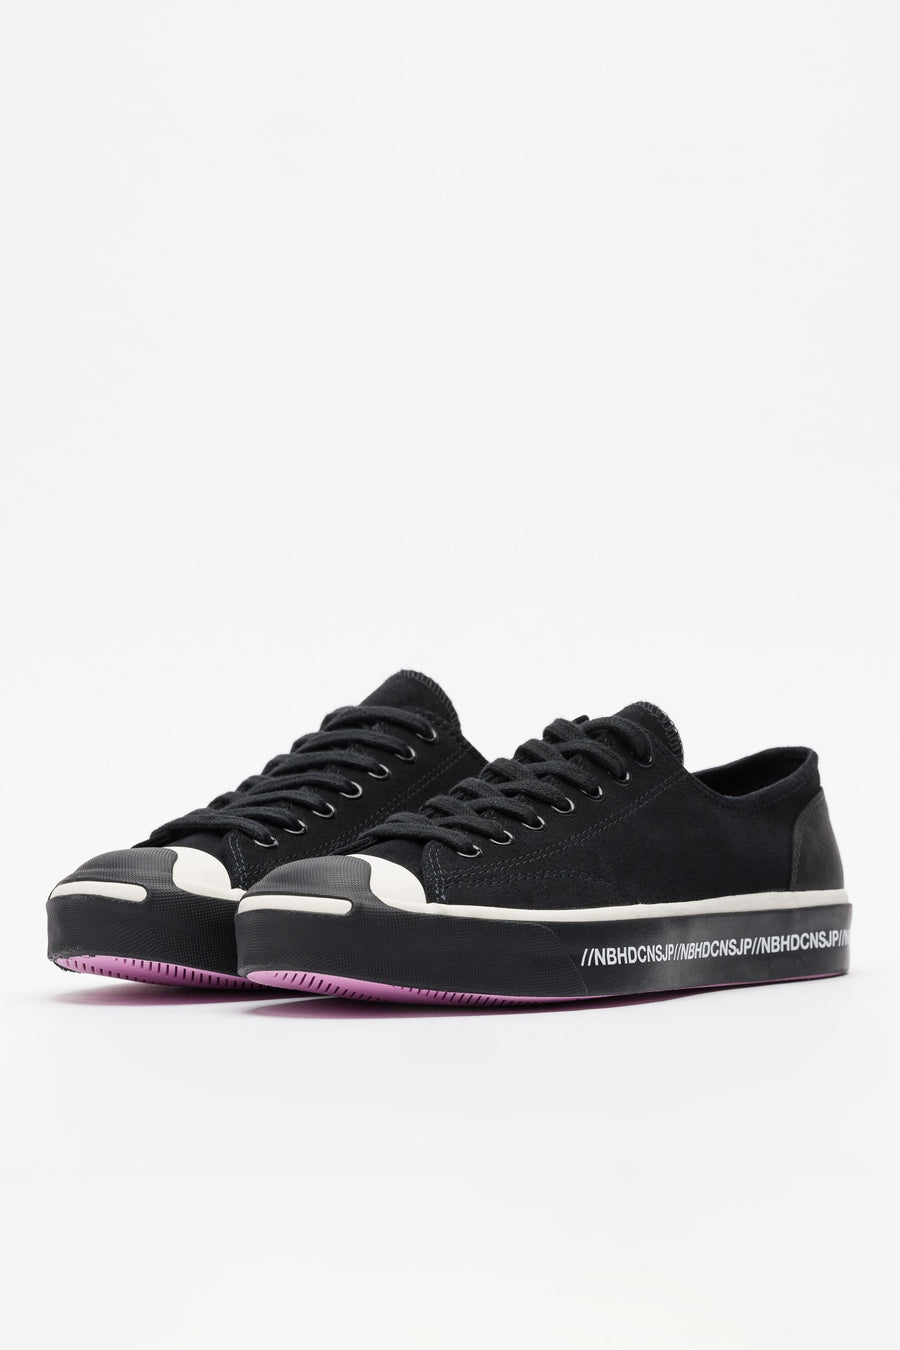 Converse Neighborhood Jack Purcell Ox in Black - Notre